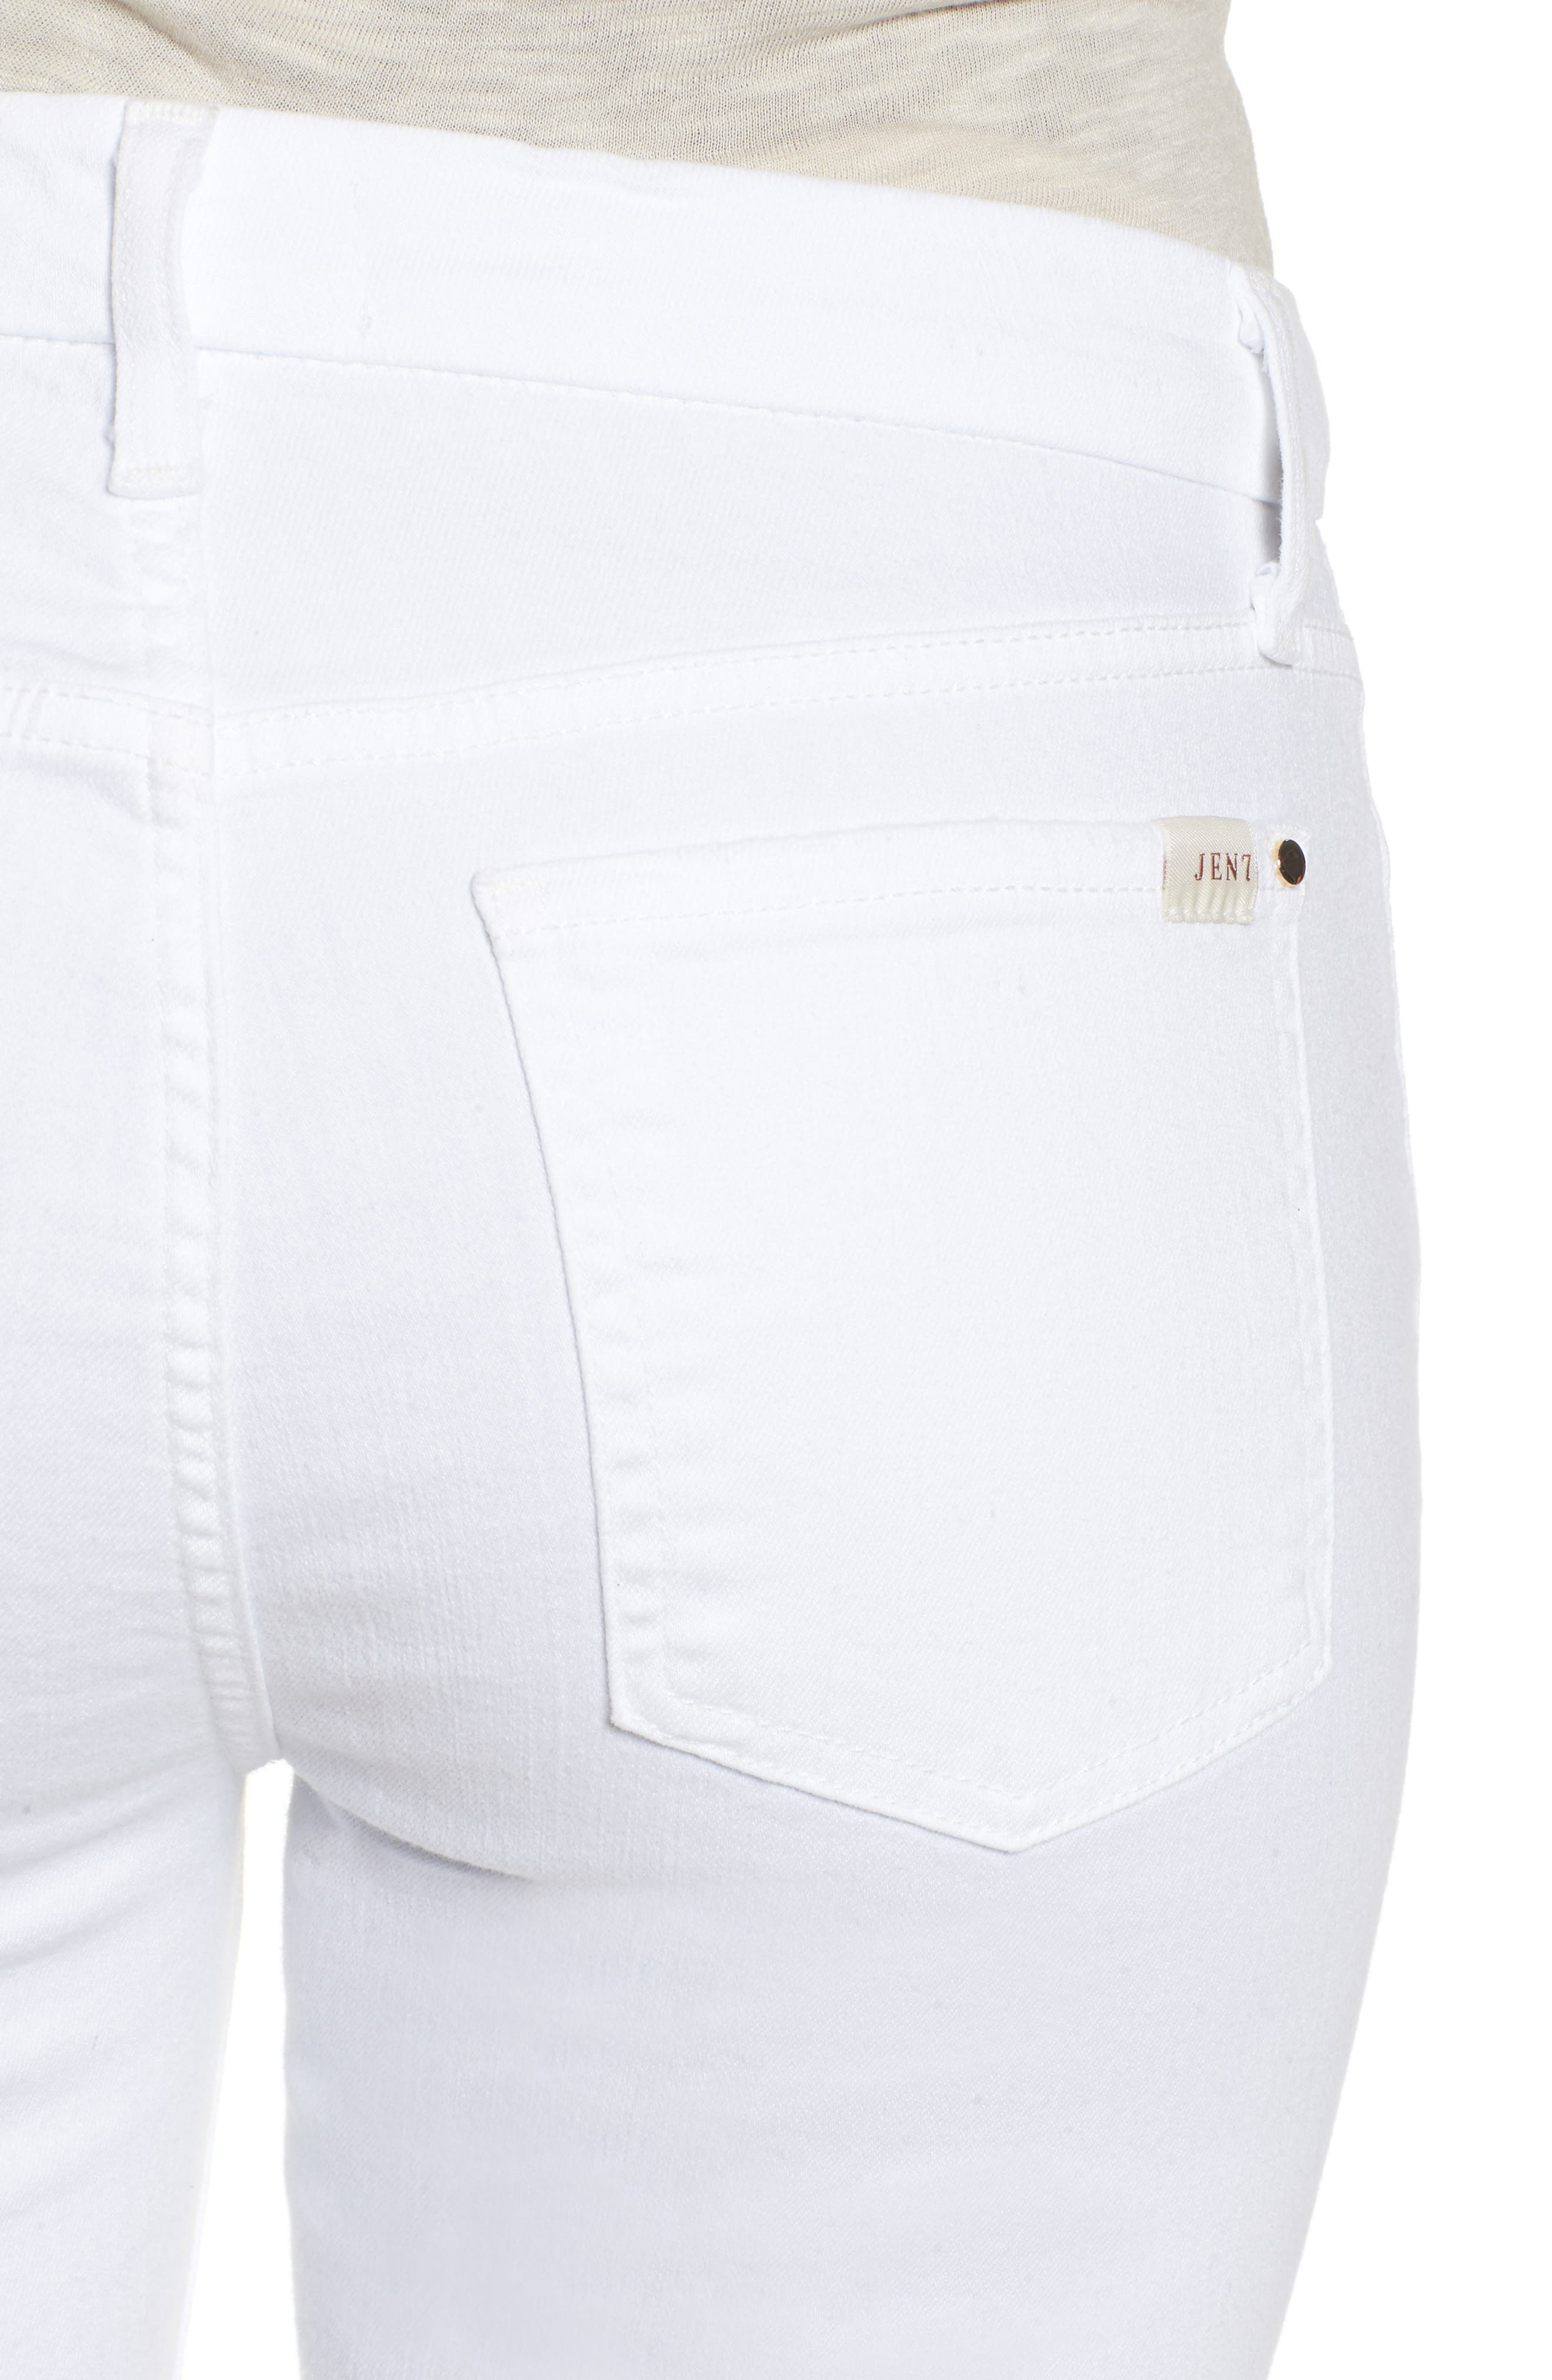 JEN7 BY 7 FOR ALL MANKIND, Ankle Skinny Jeans, Alternate thumbnail 4, color, WHITE 2